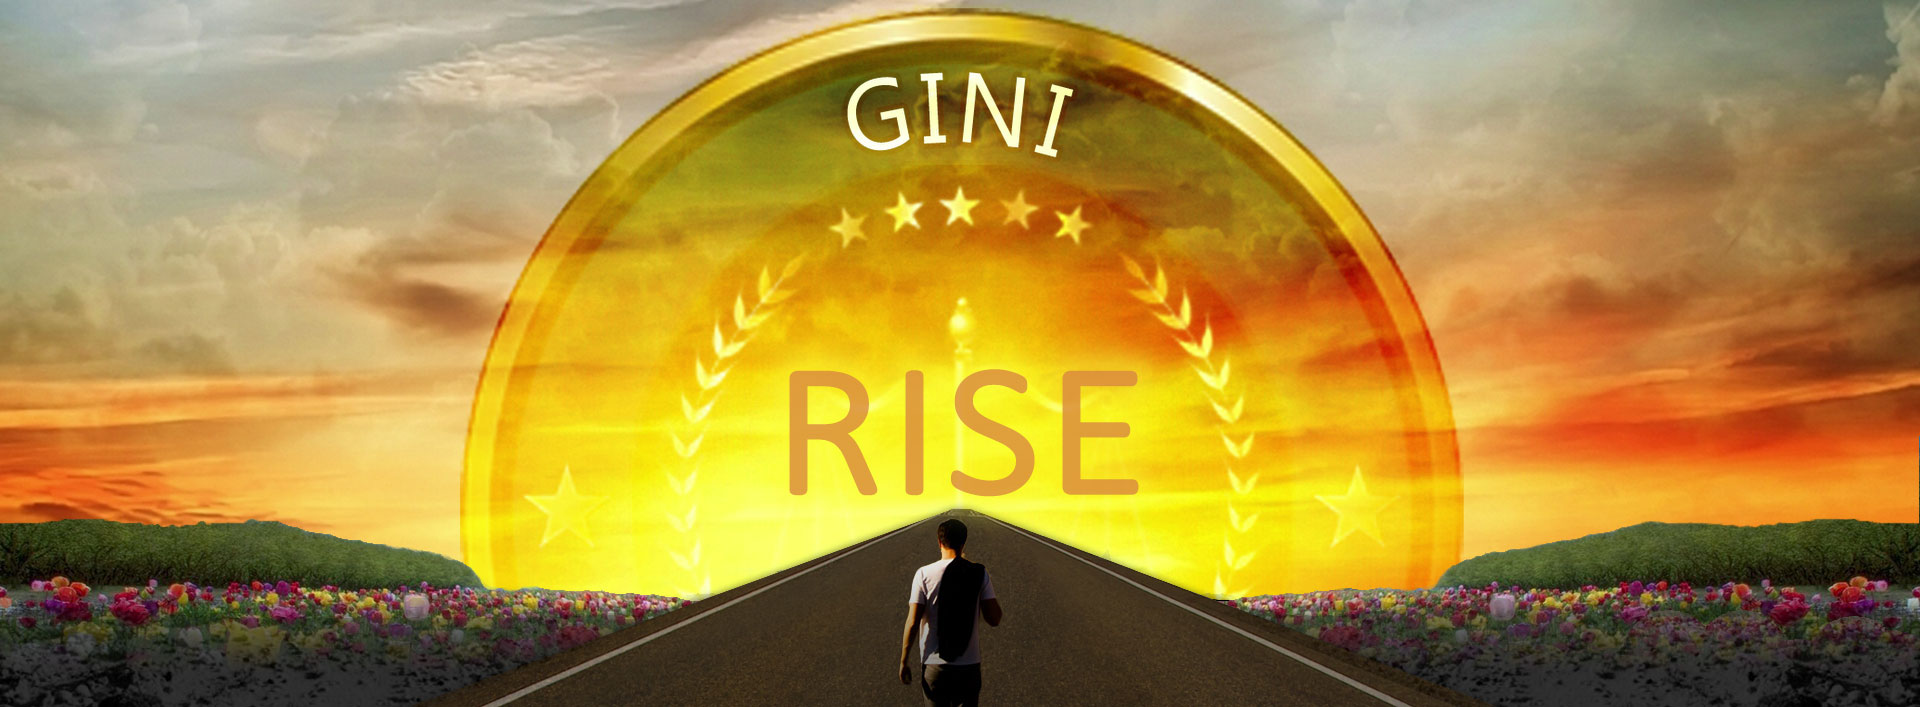 Gini Foundation Rising